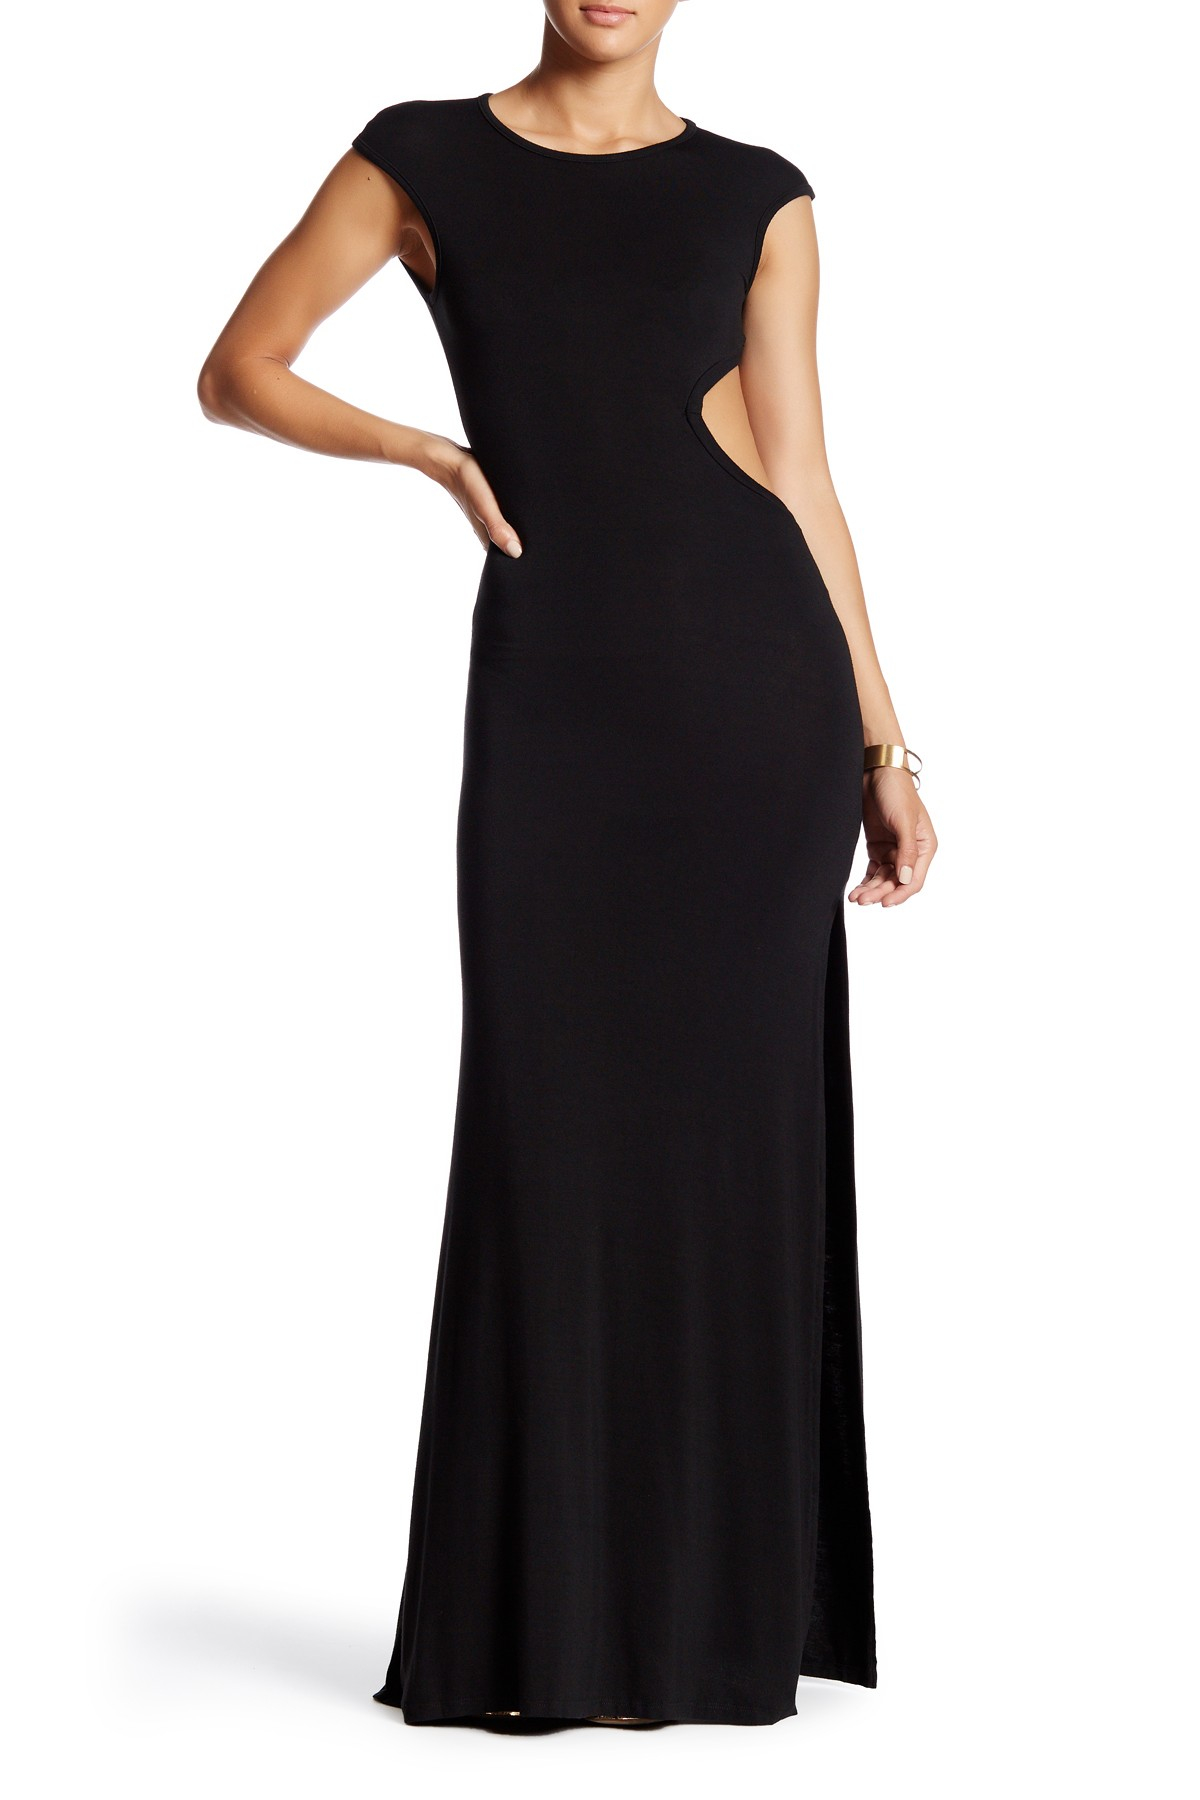 Go Couture Cap Sleeve Side Cutout Maxi Dress In Black Lyst